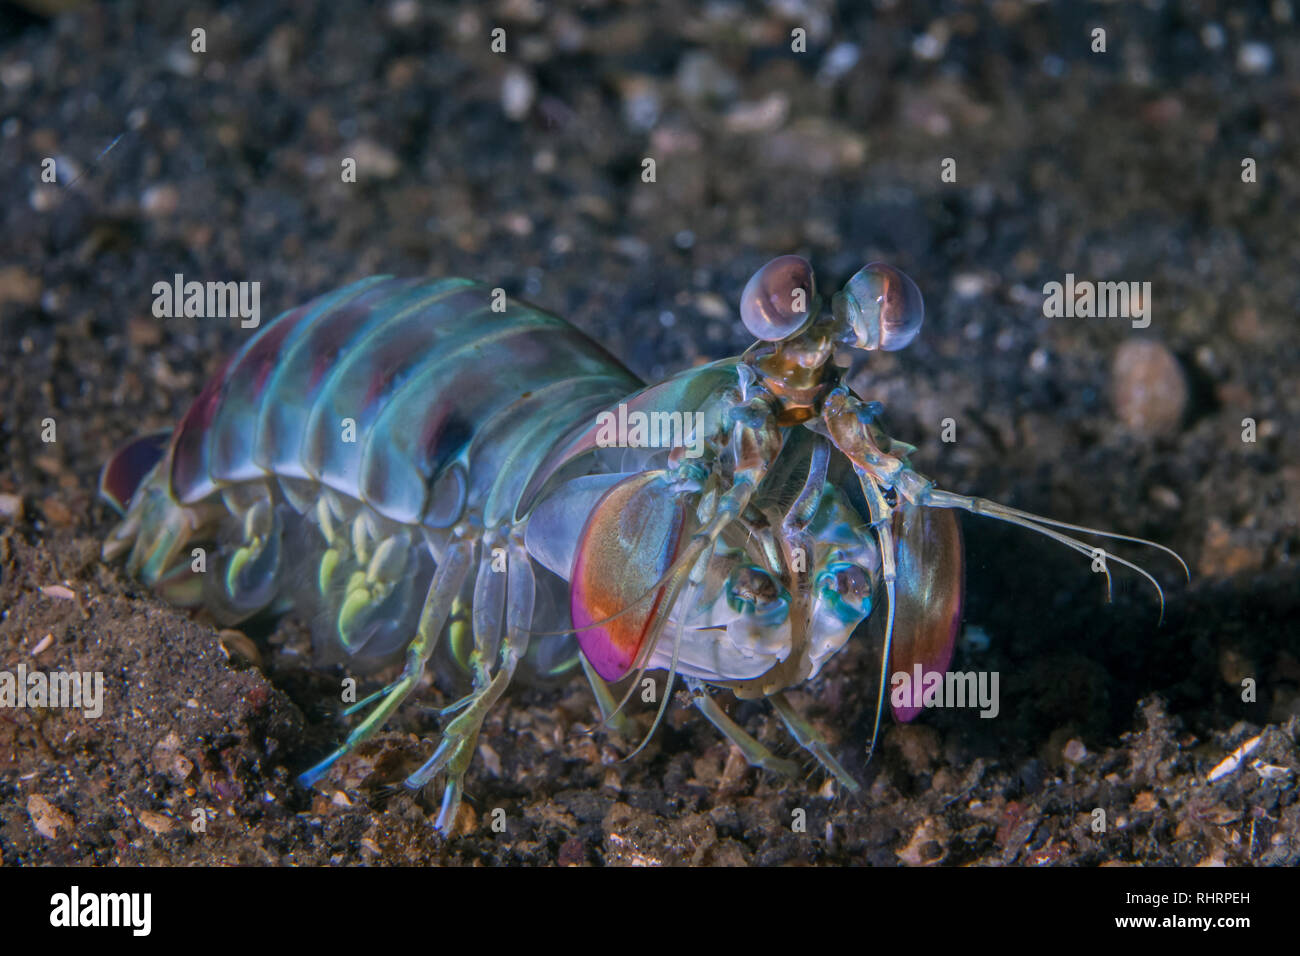 Keel Tail Manis Shrimp (Odontodactylus cultrifer) foraging on the sea floor of Lembeh Straits, Indonesia. - Stock Image